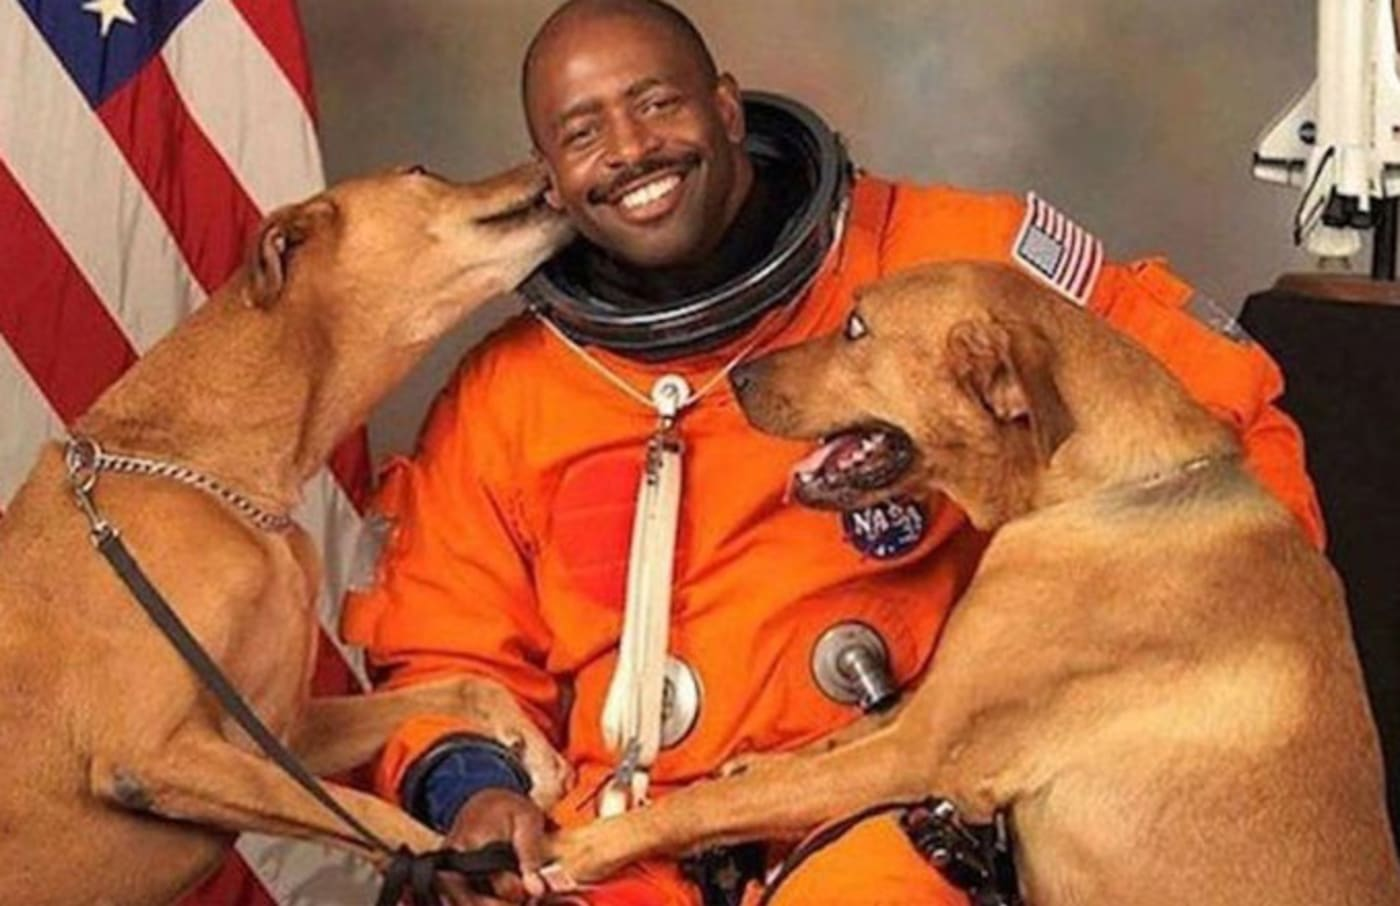 Astronaut Leland Melvin with his dogs.